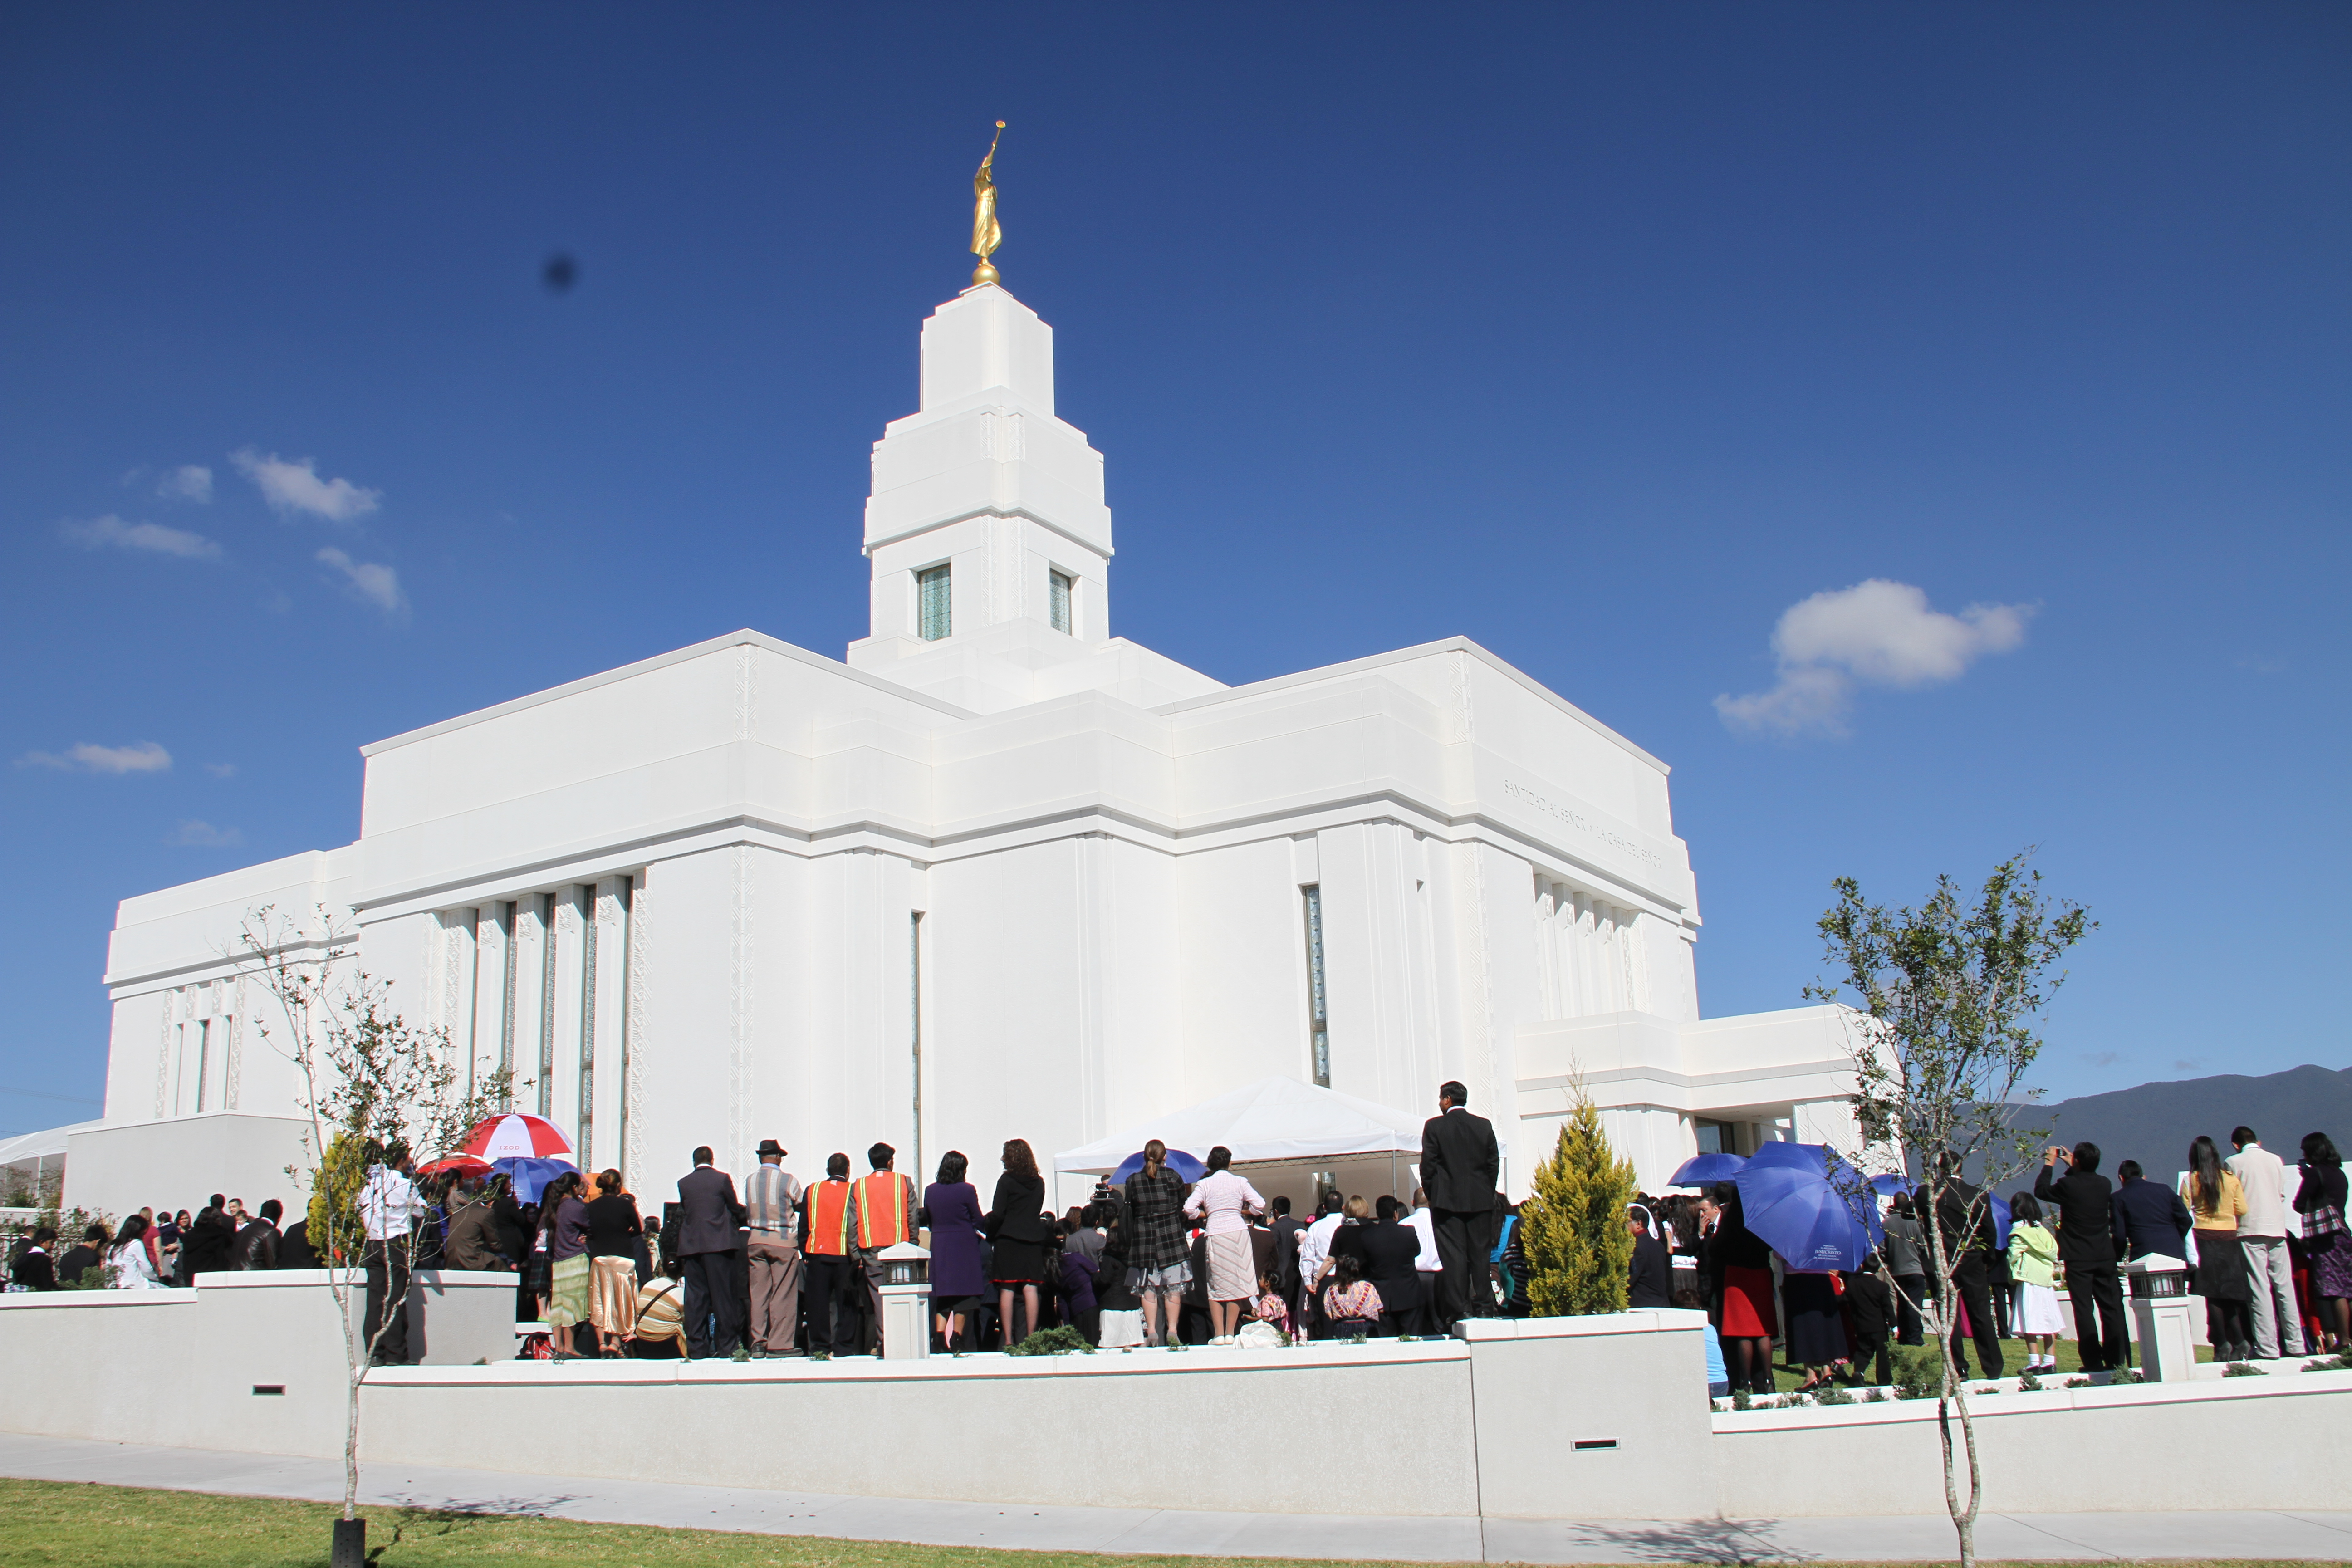 Members gather outside the Quetzaltenango Guatemala Temple prior to its dedication.